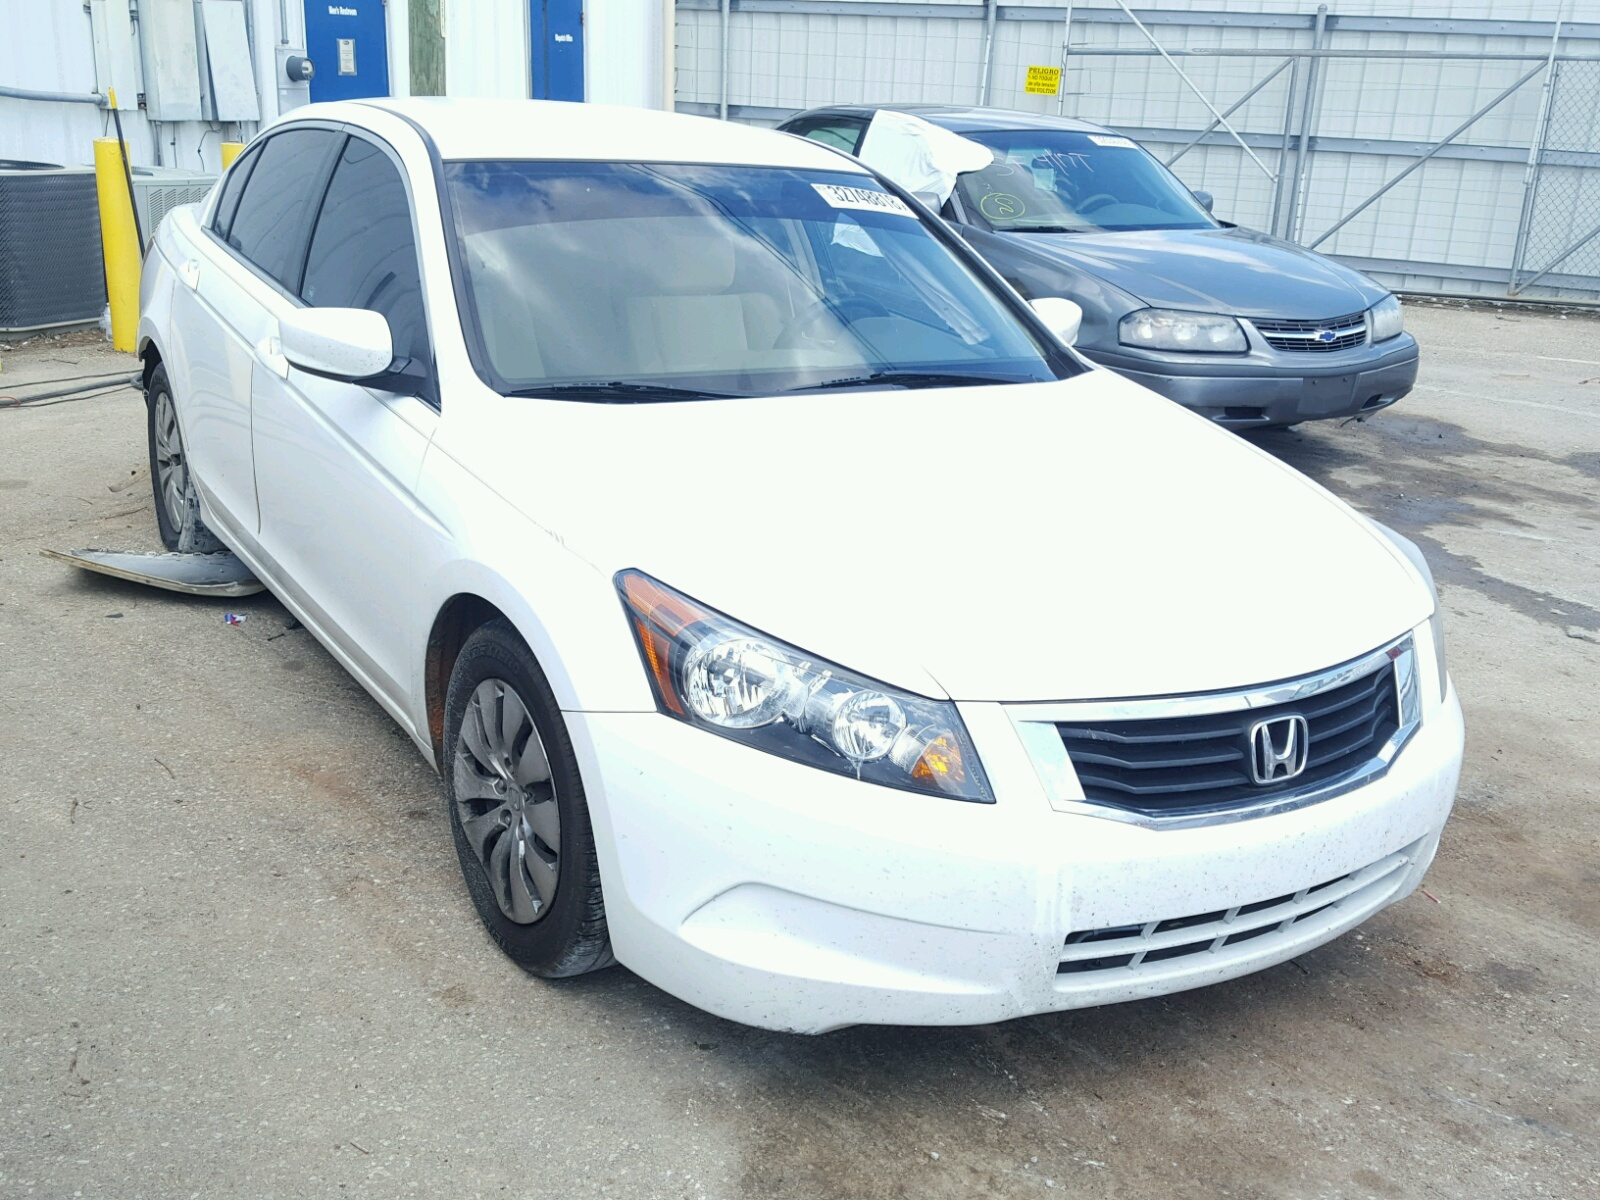 2009 Honda Accord LX for sale at Copart Montgomery AL Lot